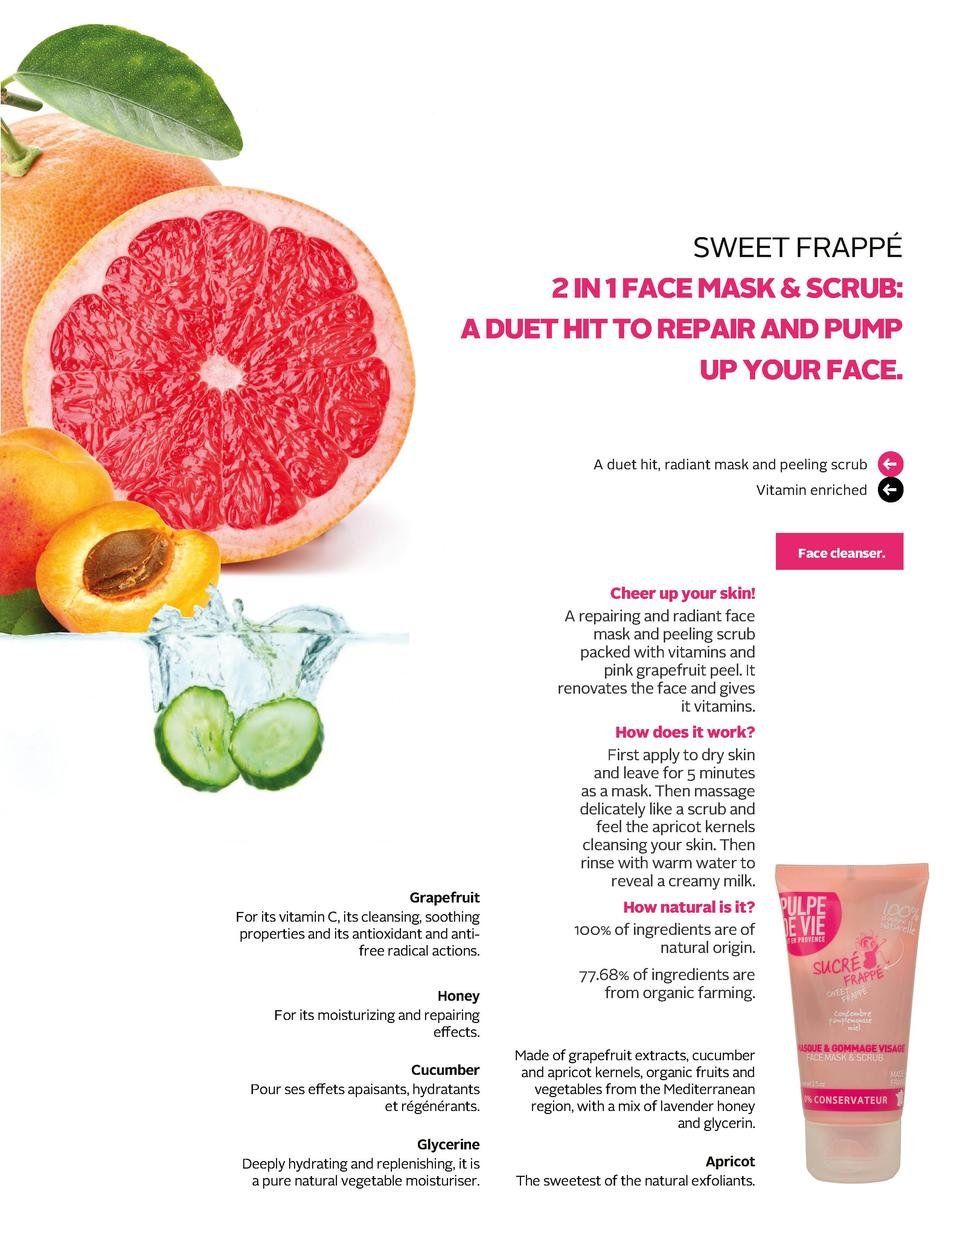 SWEET FRAPP   2 IN 1 FACE MASK   SCRUB  A DUET HIT TO REPAIR AND PUMP UP YOUR FACE.  Vitamin enriched           A duet hit...